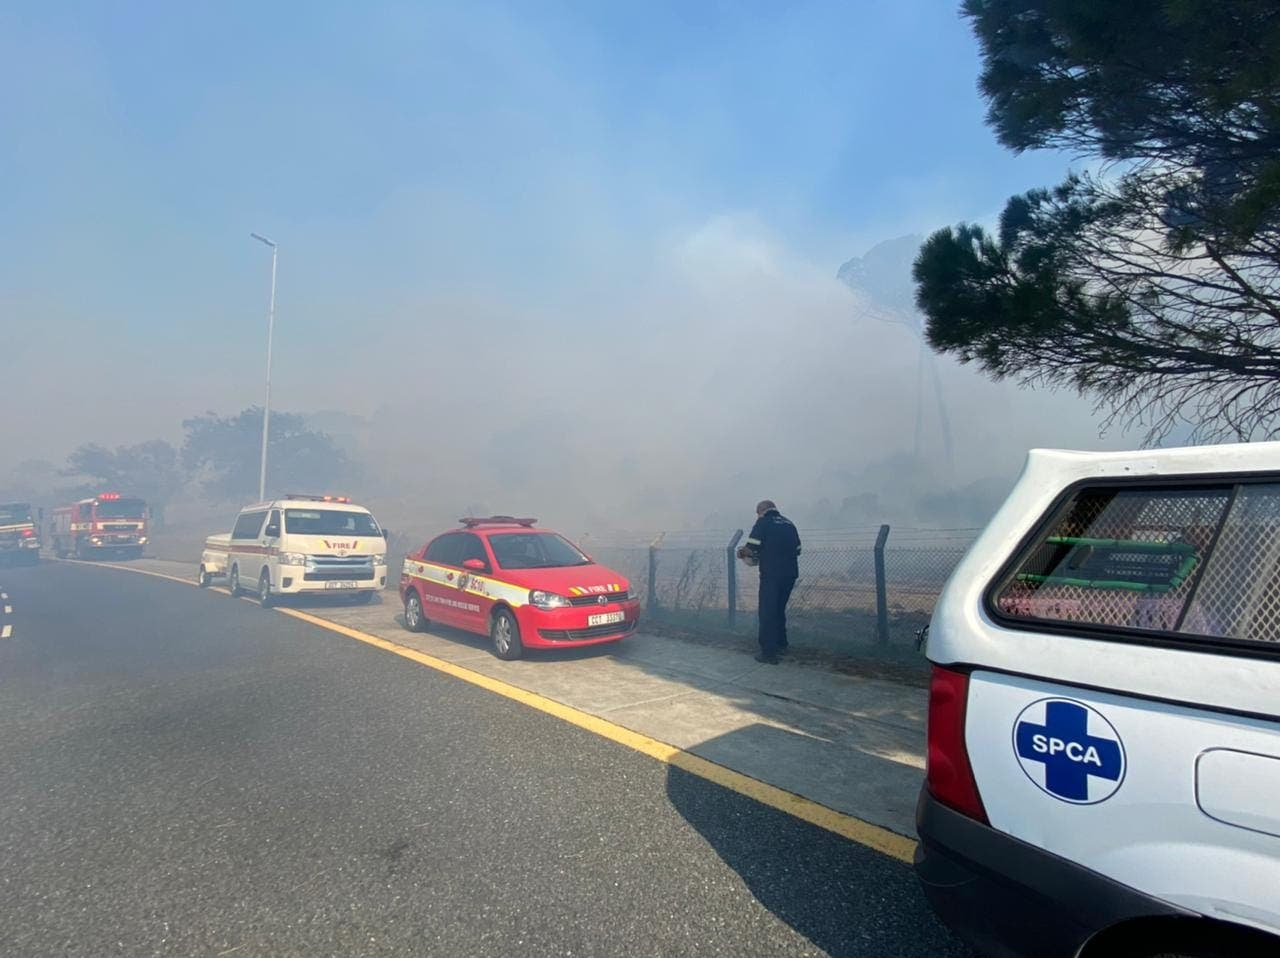 SPCA call to help animals cape town fire